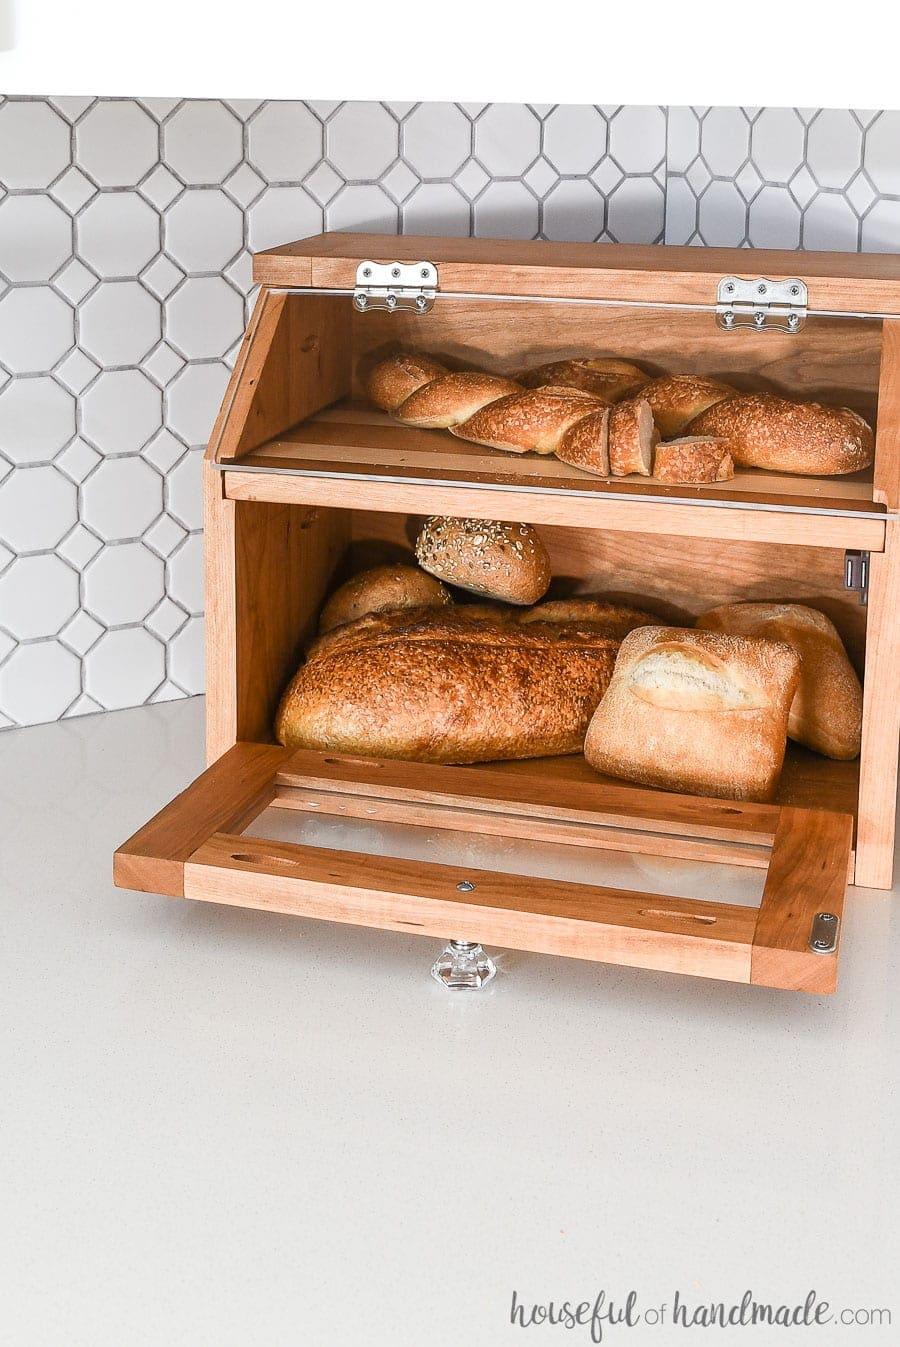 Lower door of the DIY bread box open to show how much room there is inside.